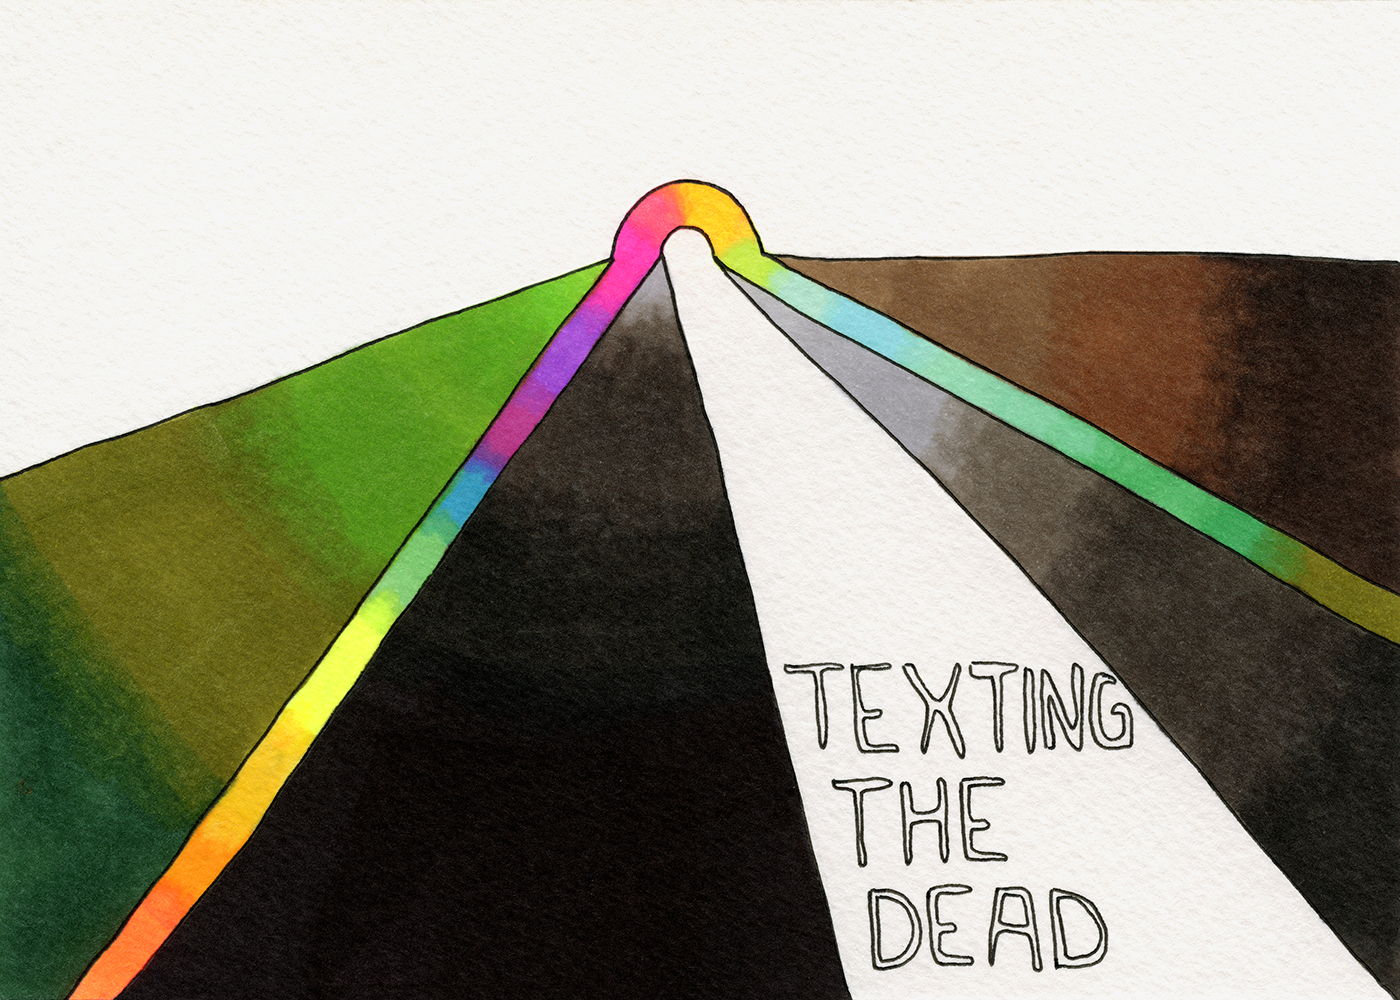 67_texting_the_dead.jpg